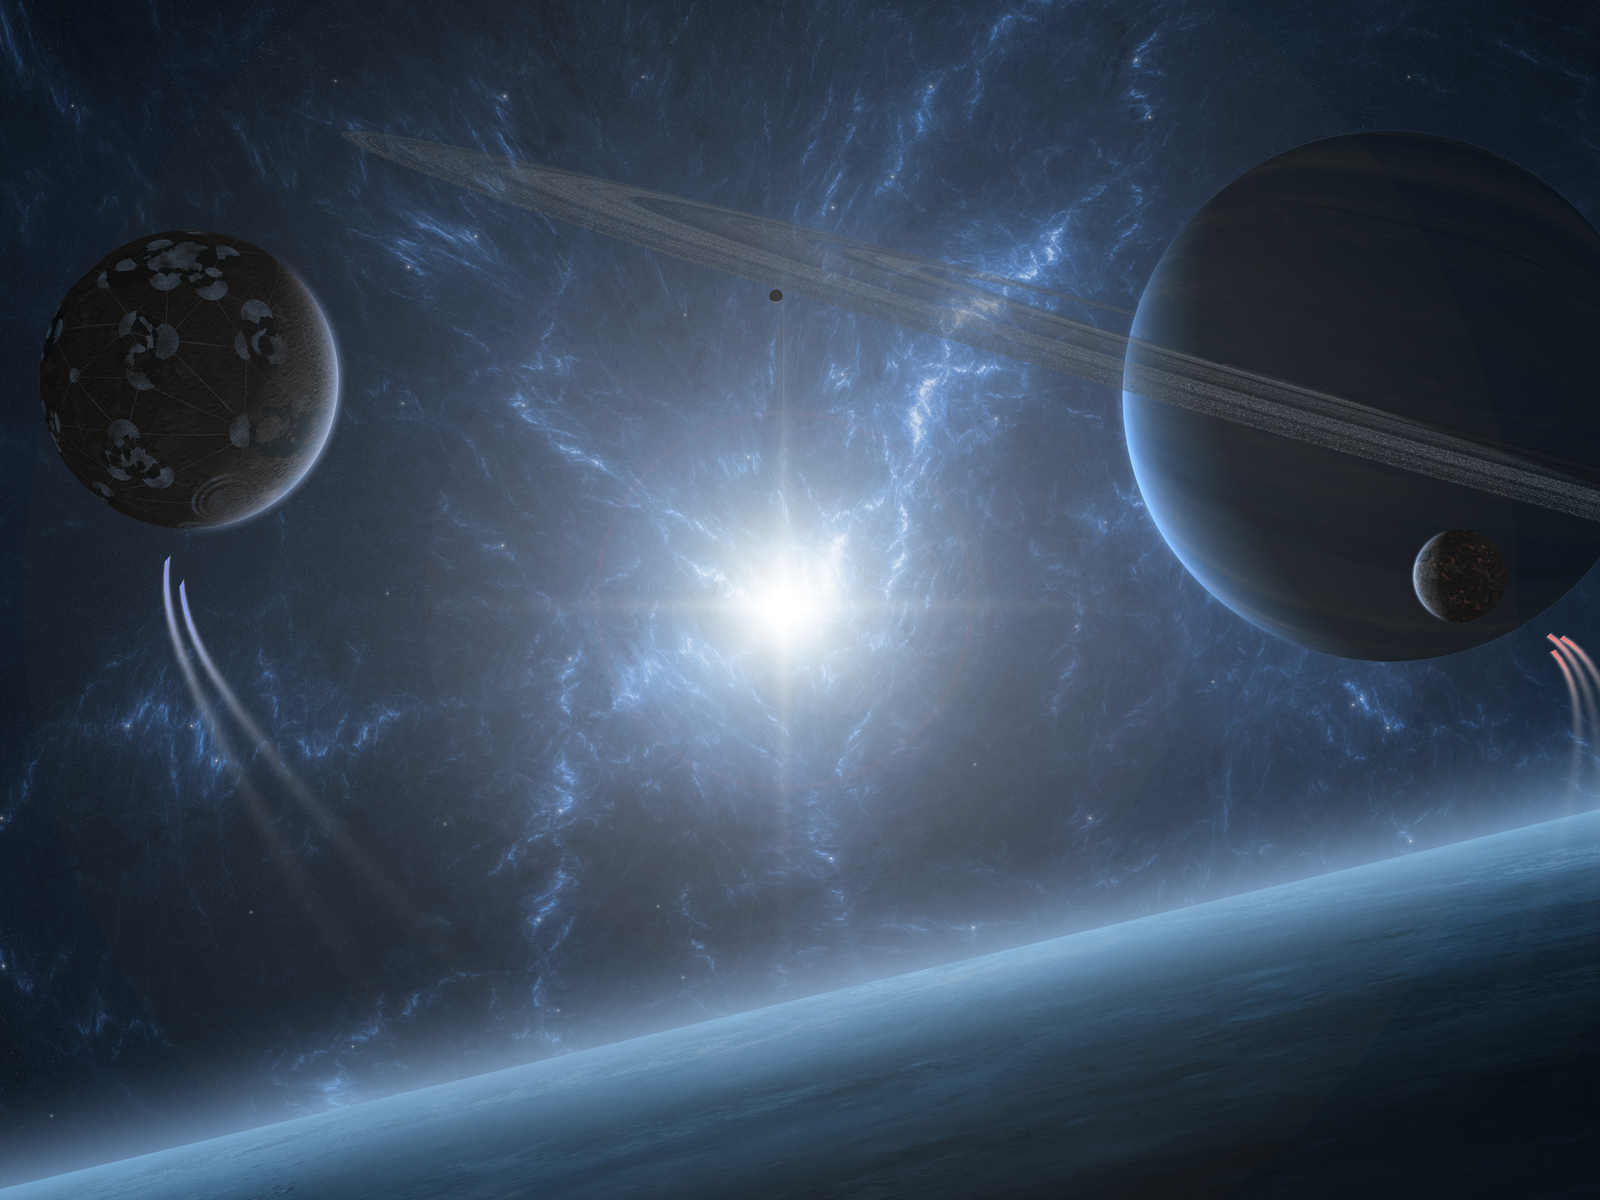 The planet and the star